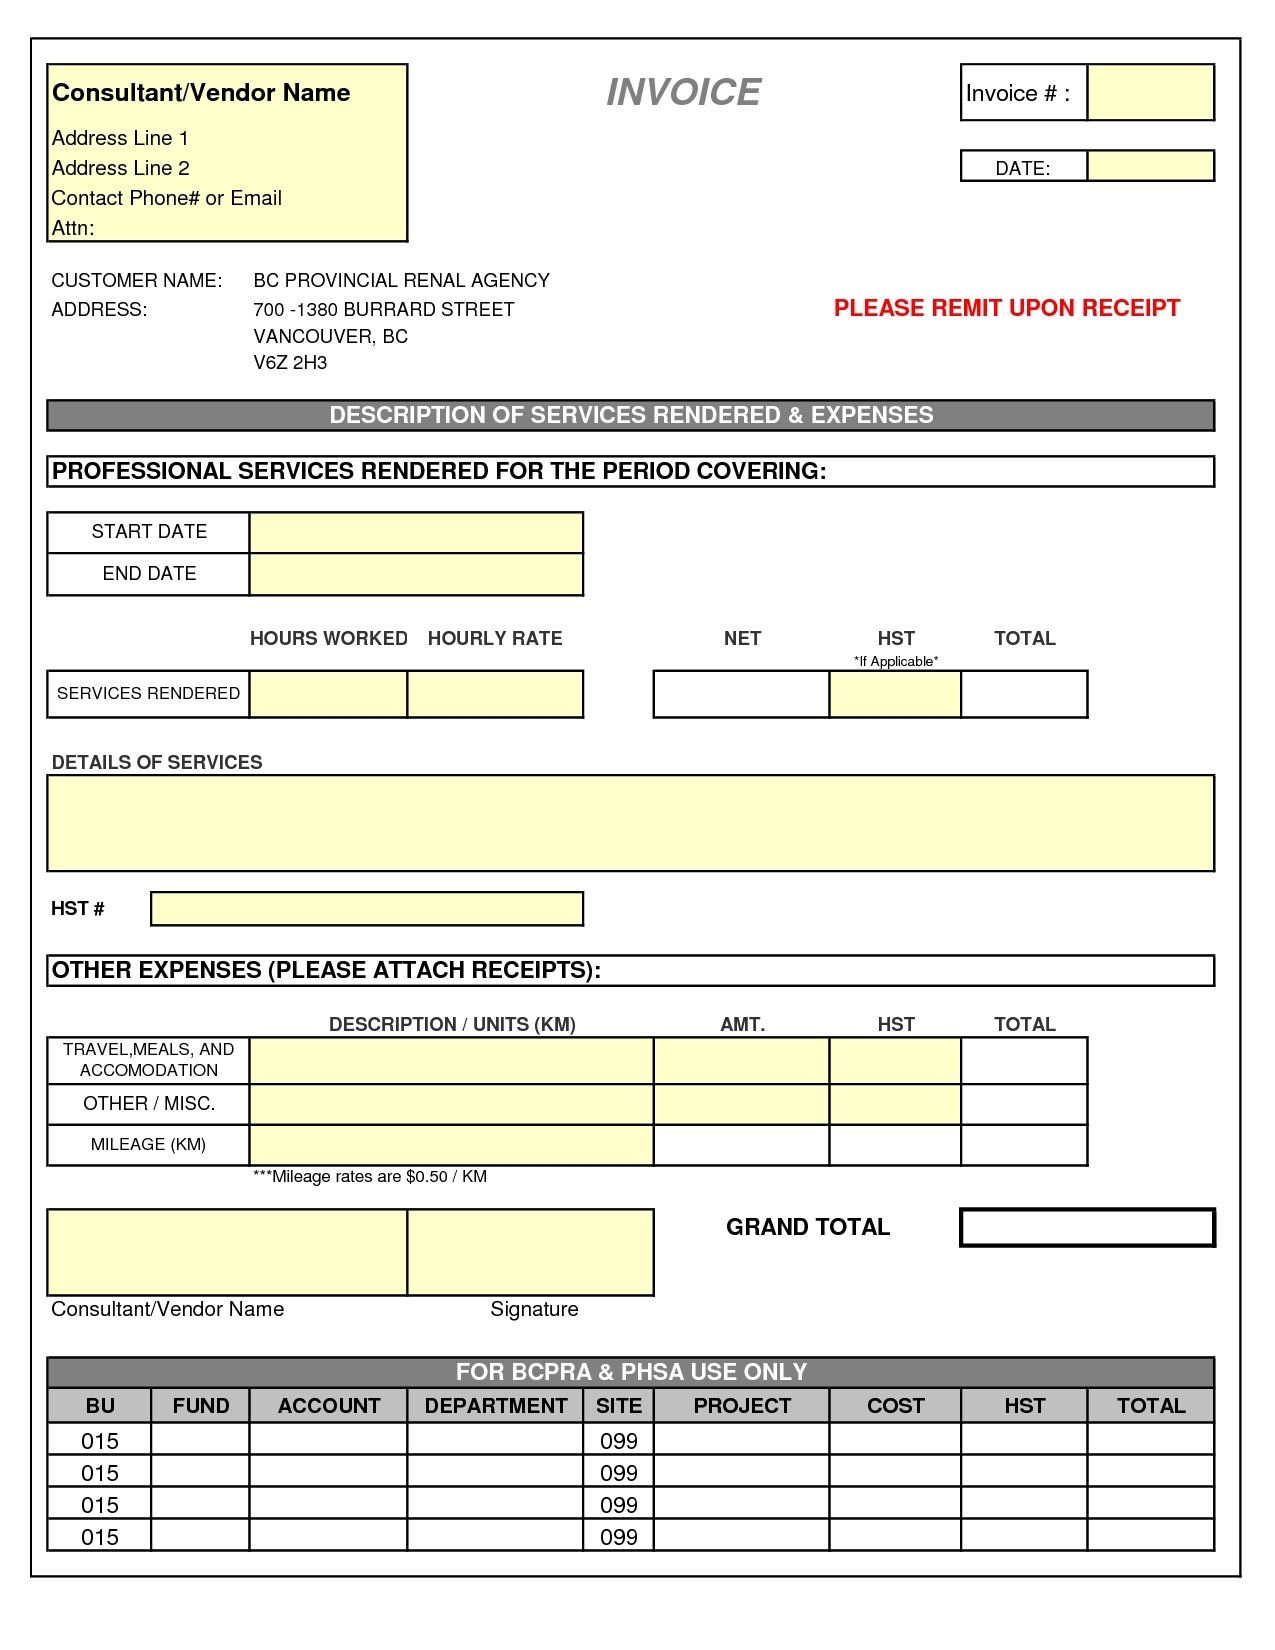 sample invoices for consulting services invoice template for consulting services | invoice template free 2016 1275 X 1650